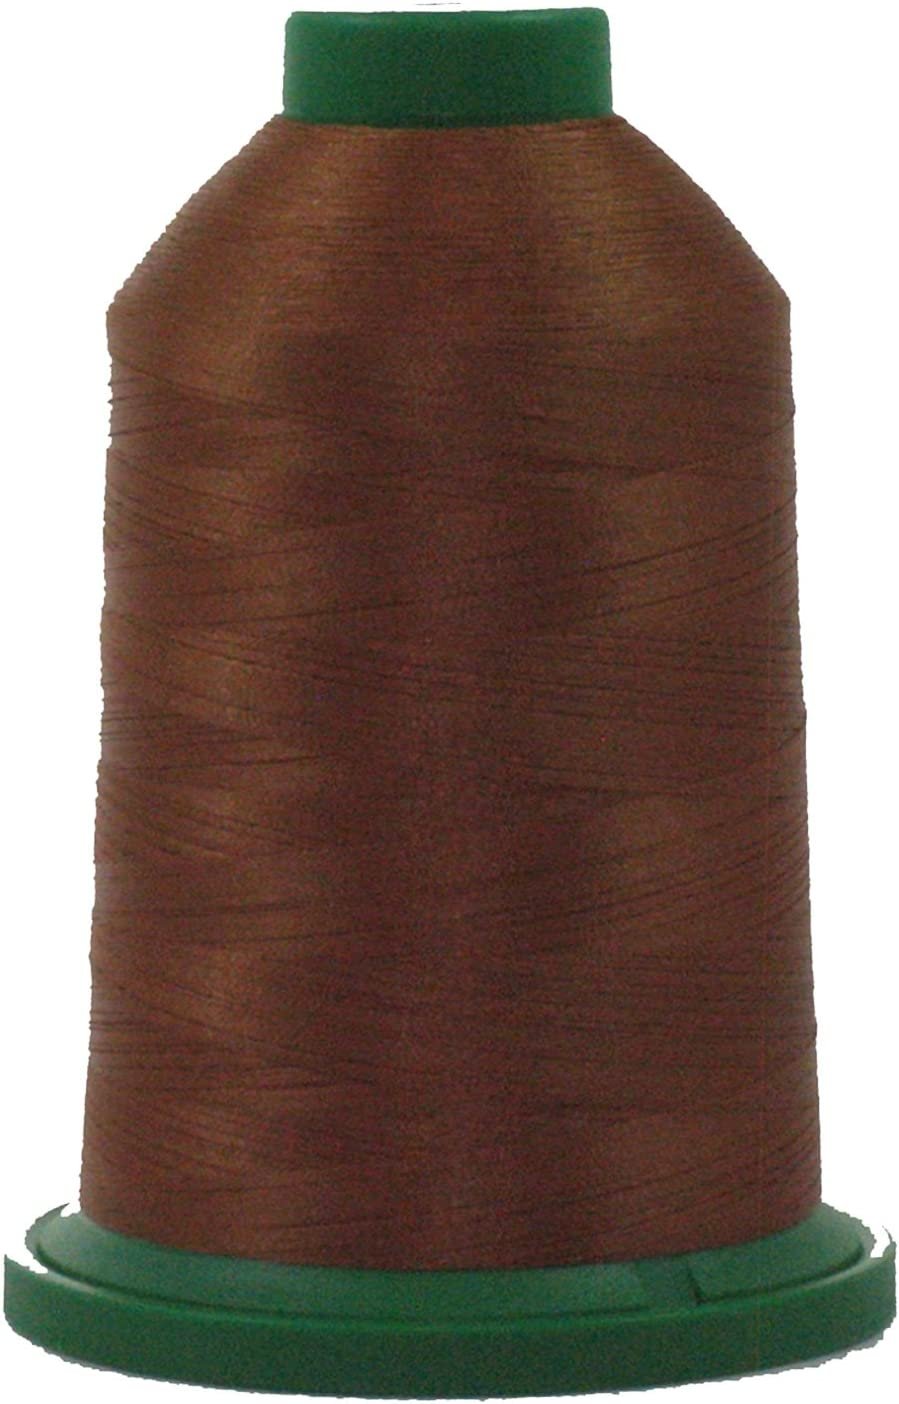 Isacord Embroidery Thread 5000m 1030-1172 1030